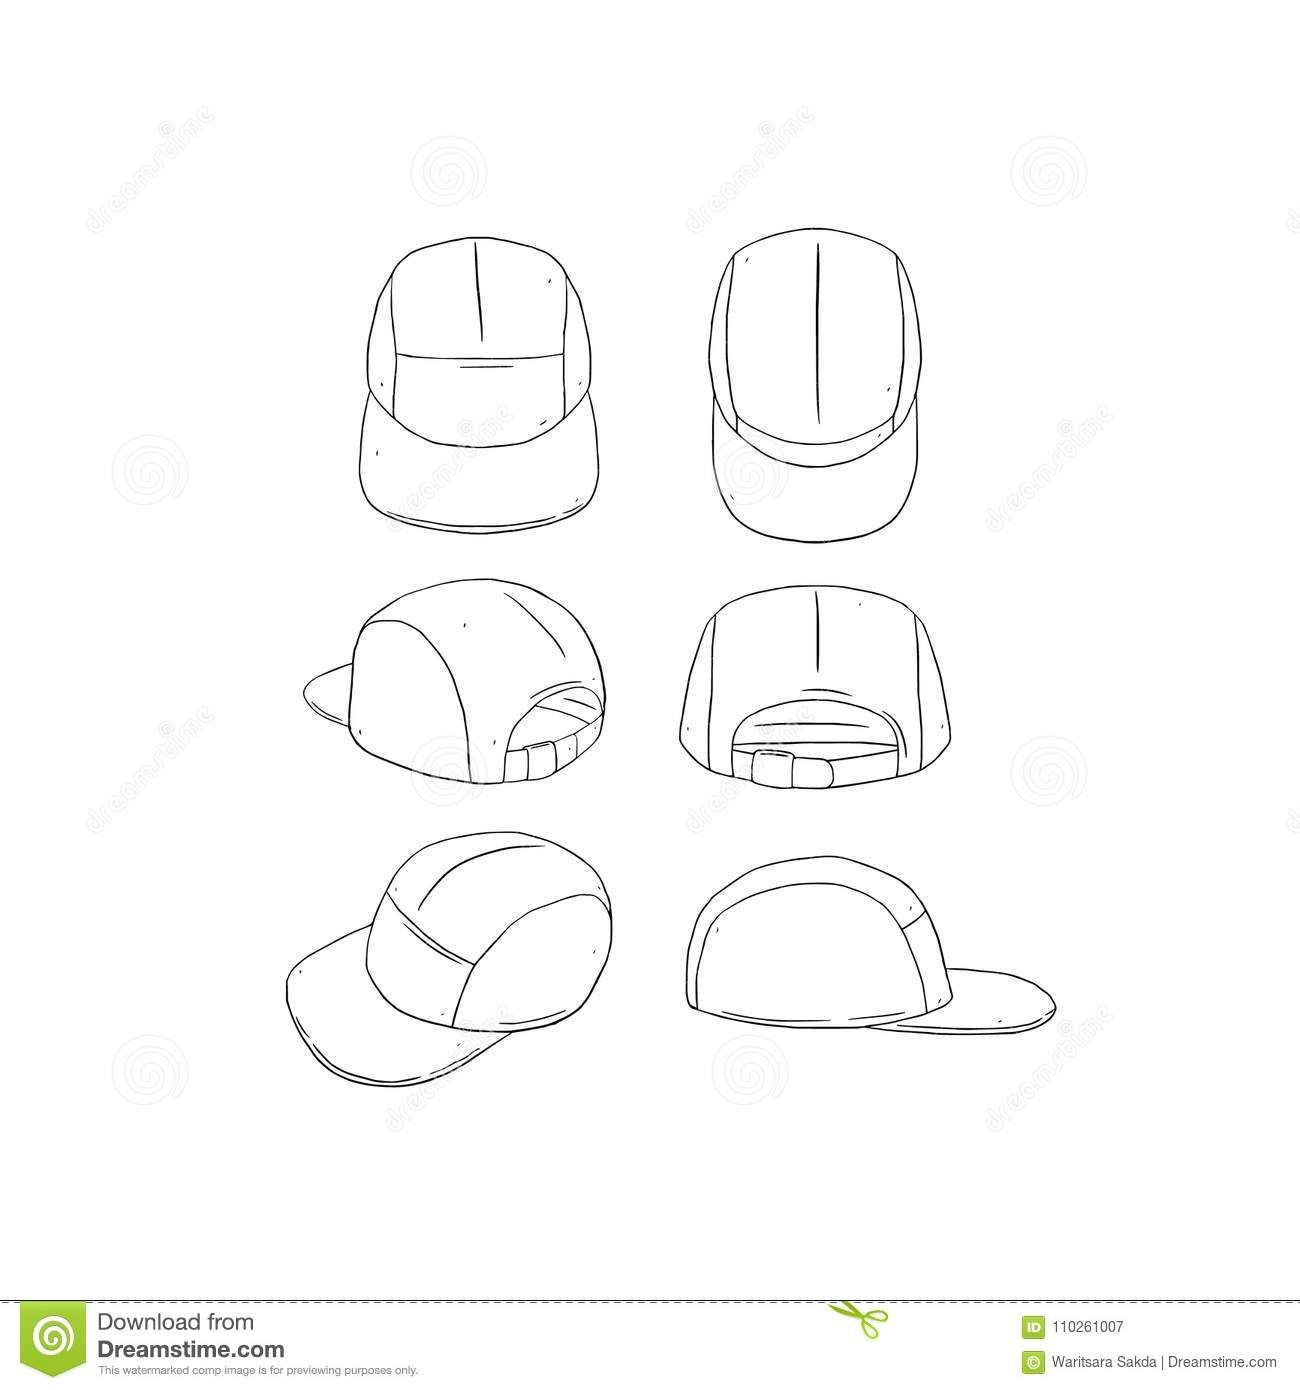 The amazing Hand Drawn Vector Illustration Of Blank 5